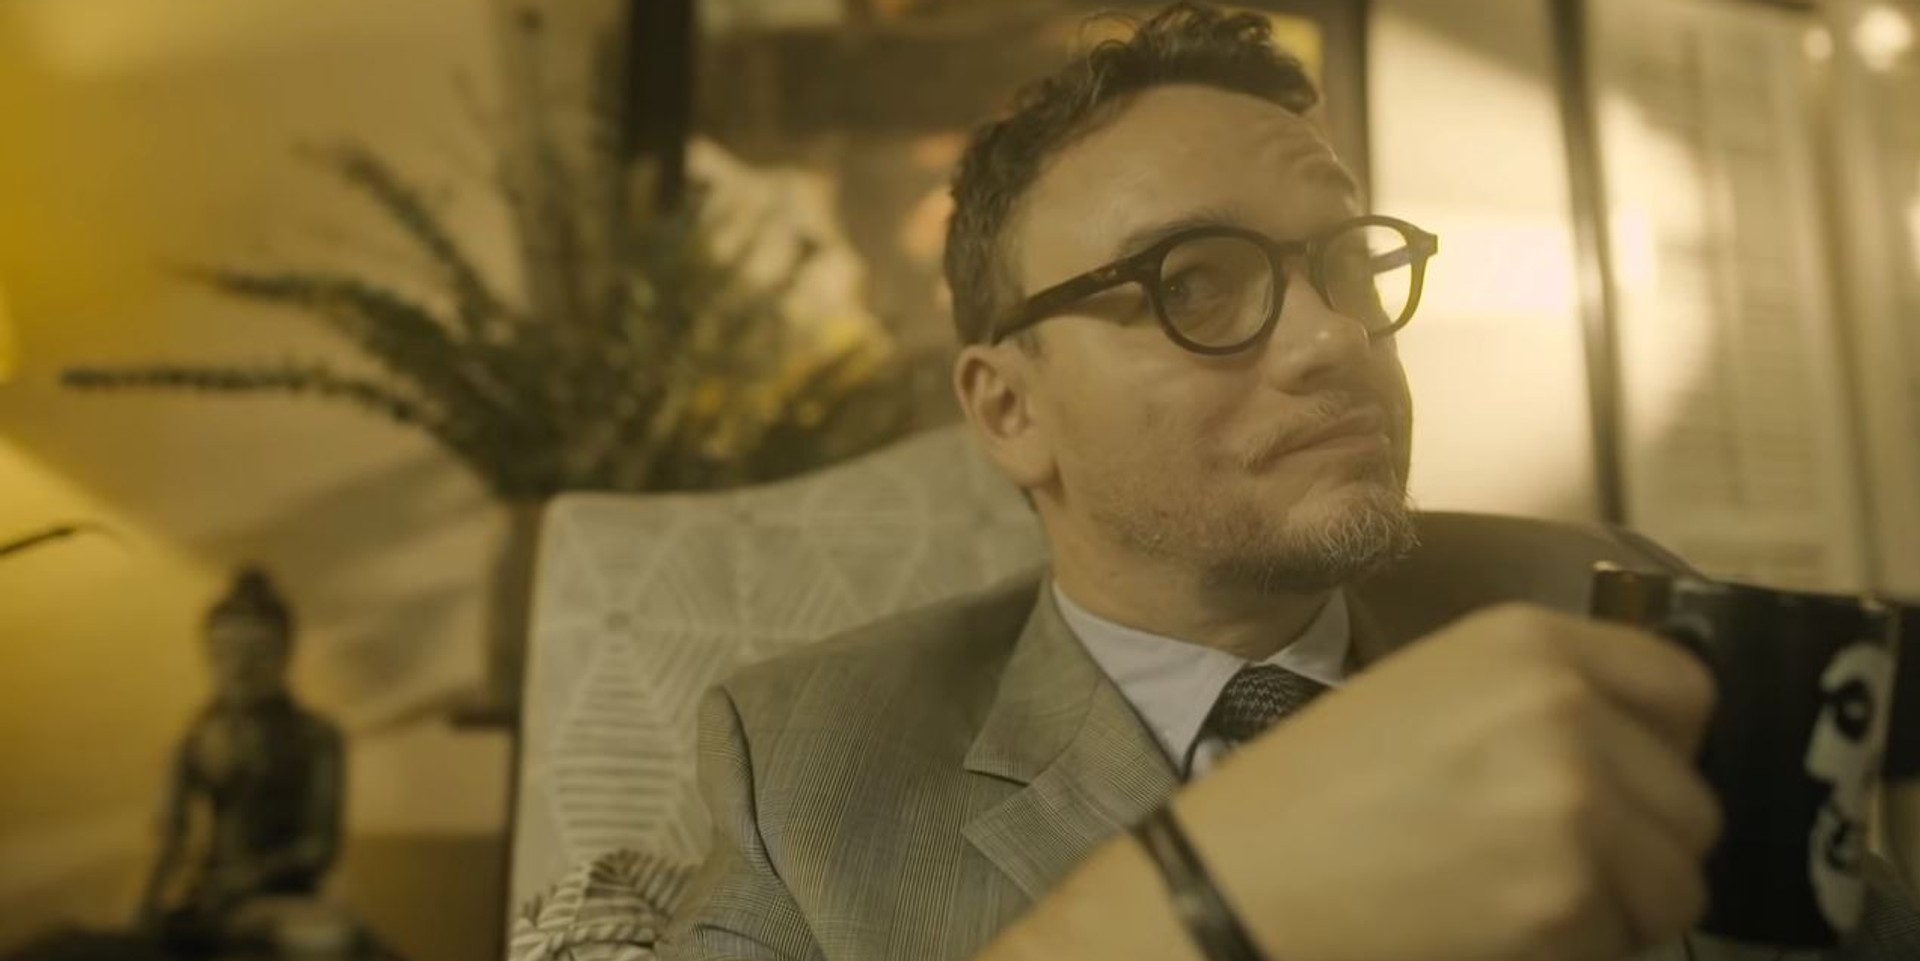 Basti Artadi plays therapist for Jobim Javier in 'Ayoko Lab Song' music video – watch